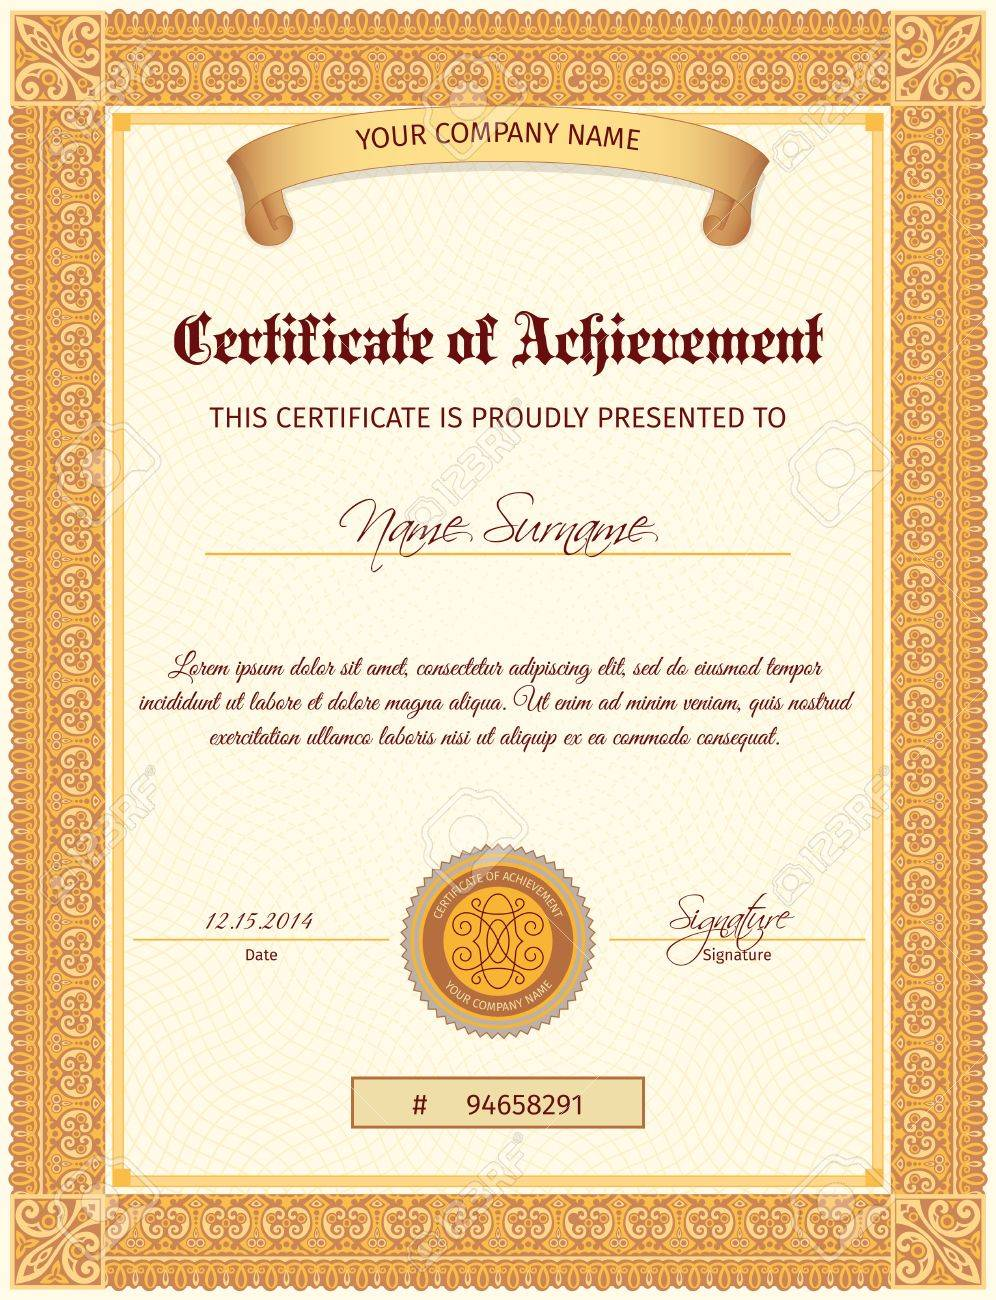 Certificate Document Of Achievement Vertical Template With Seal